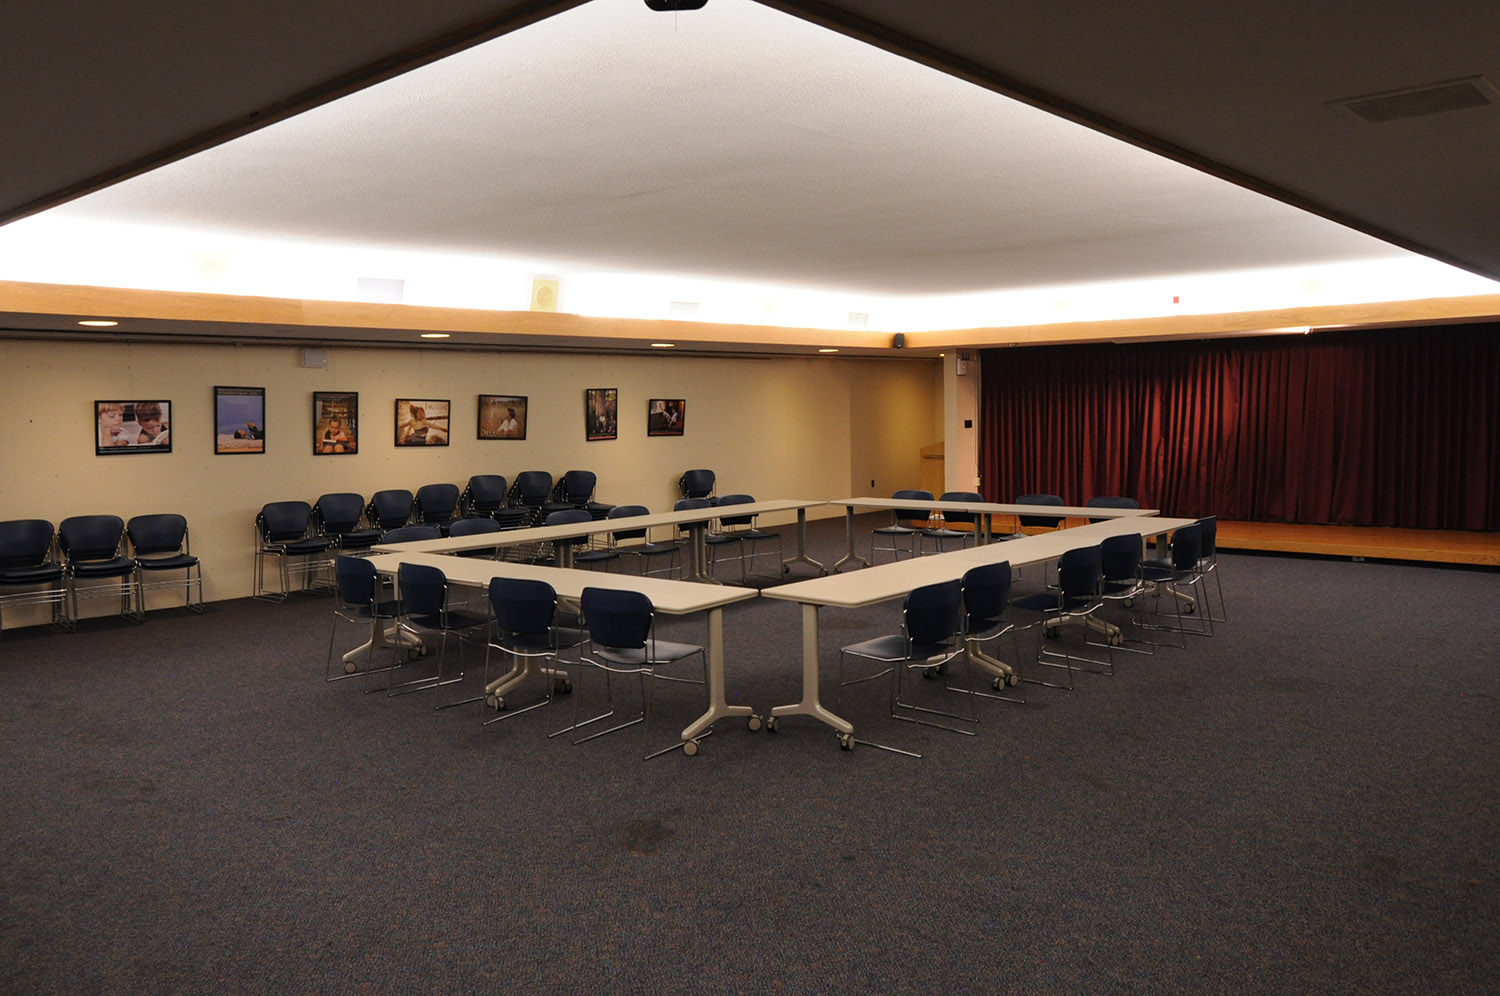 Towson Meeting Room image